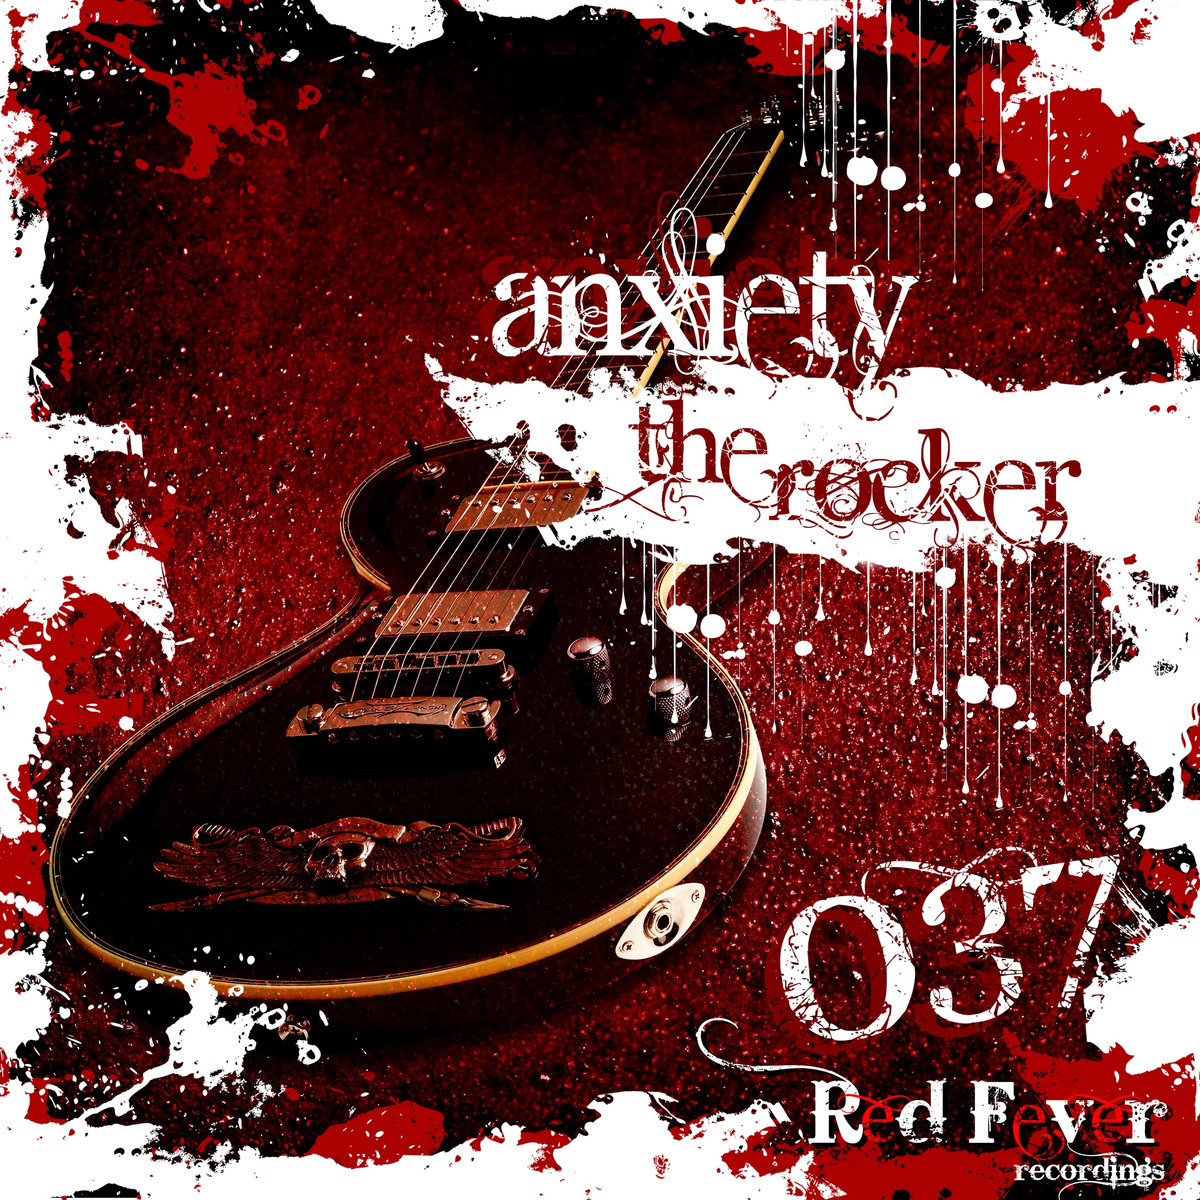 Anxiety - The Rocker! @ 'The Rocker!' album (electronic, anxiety)